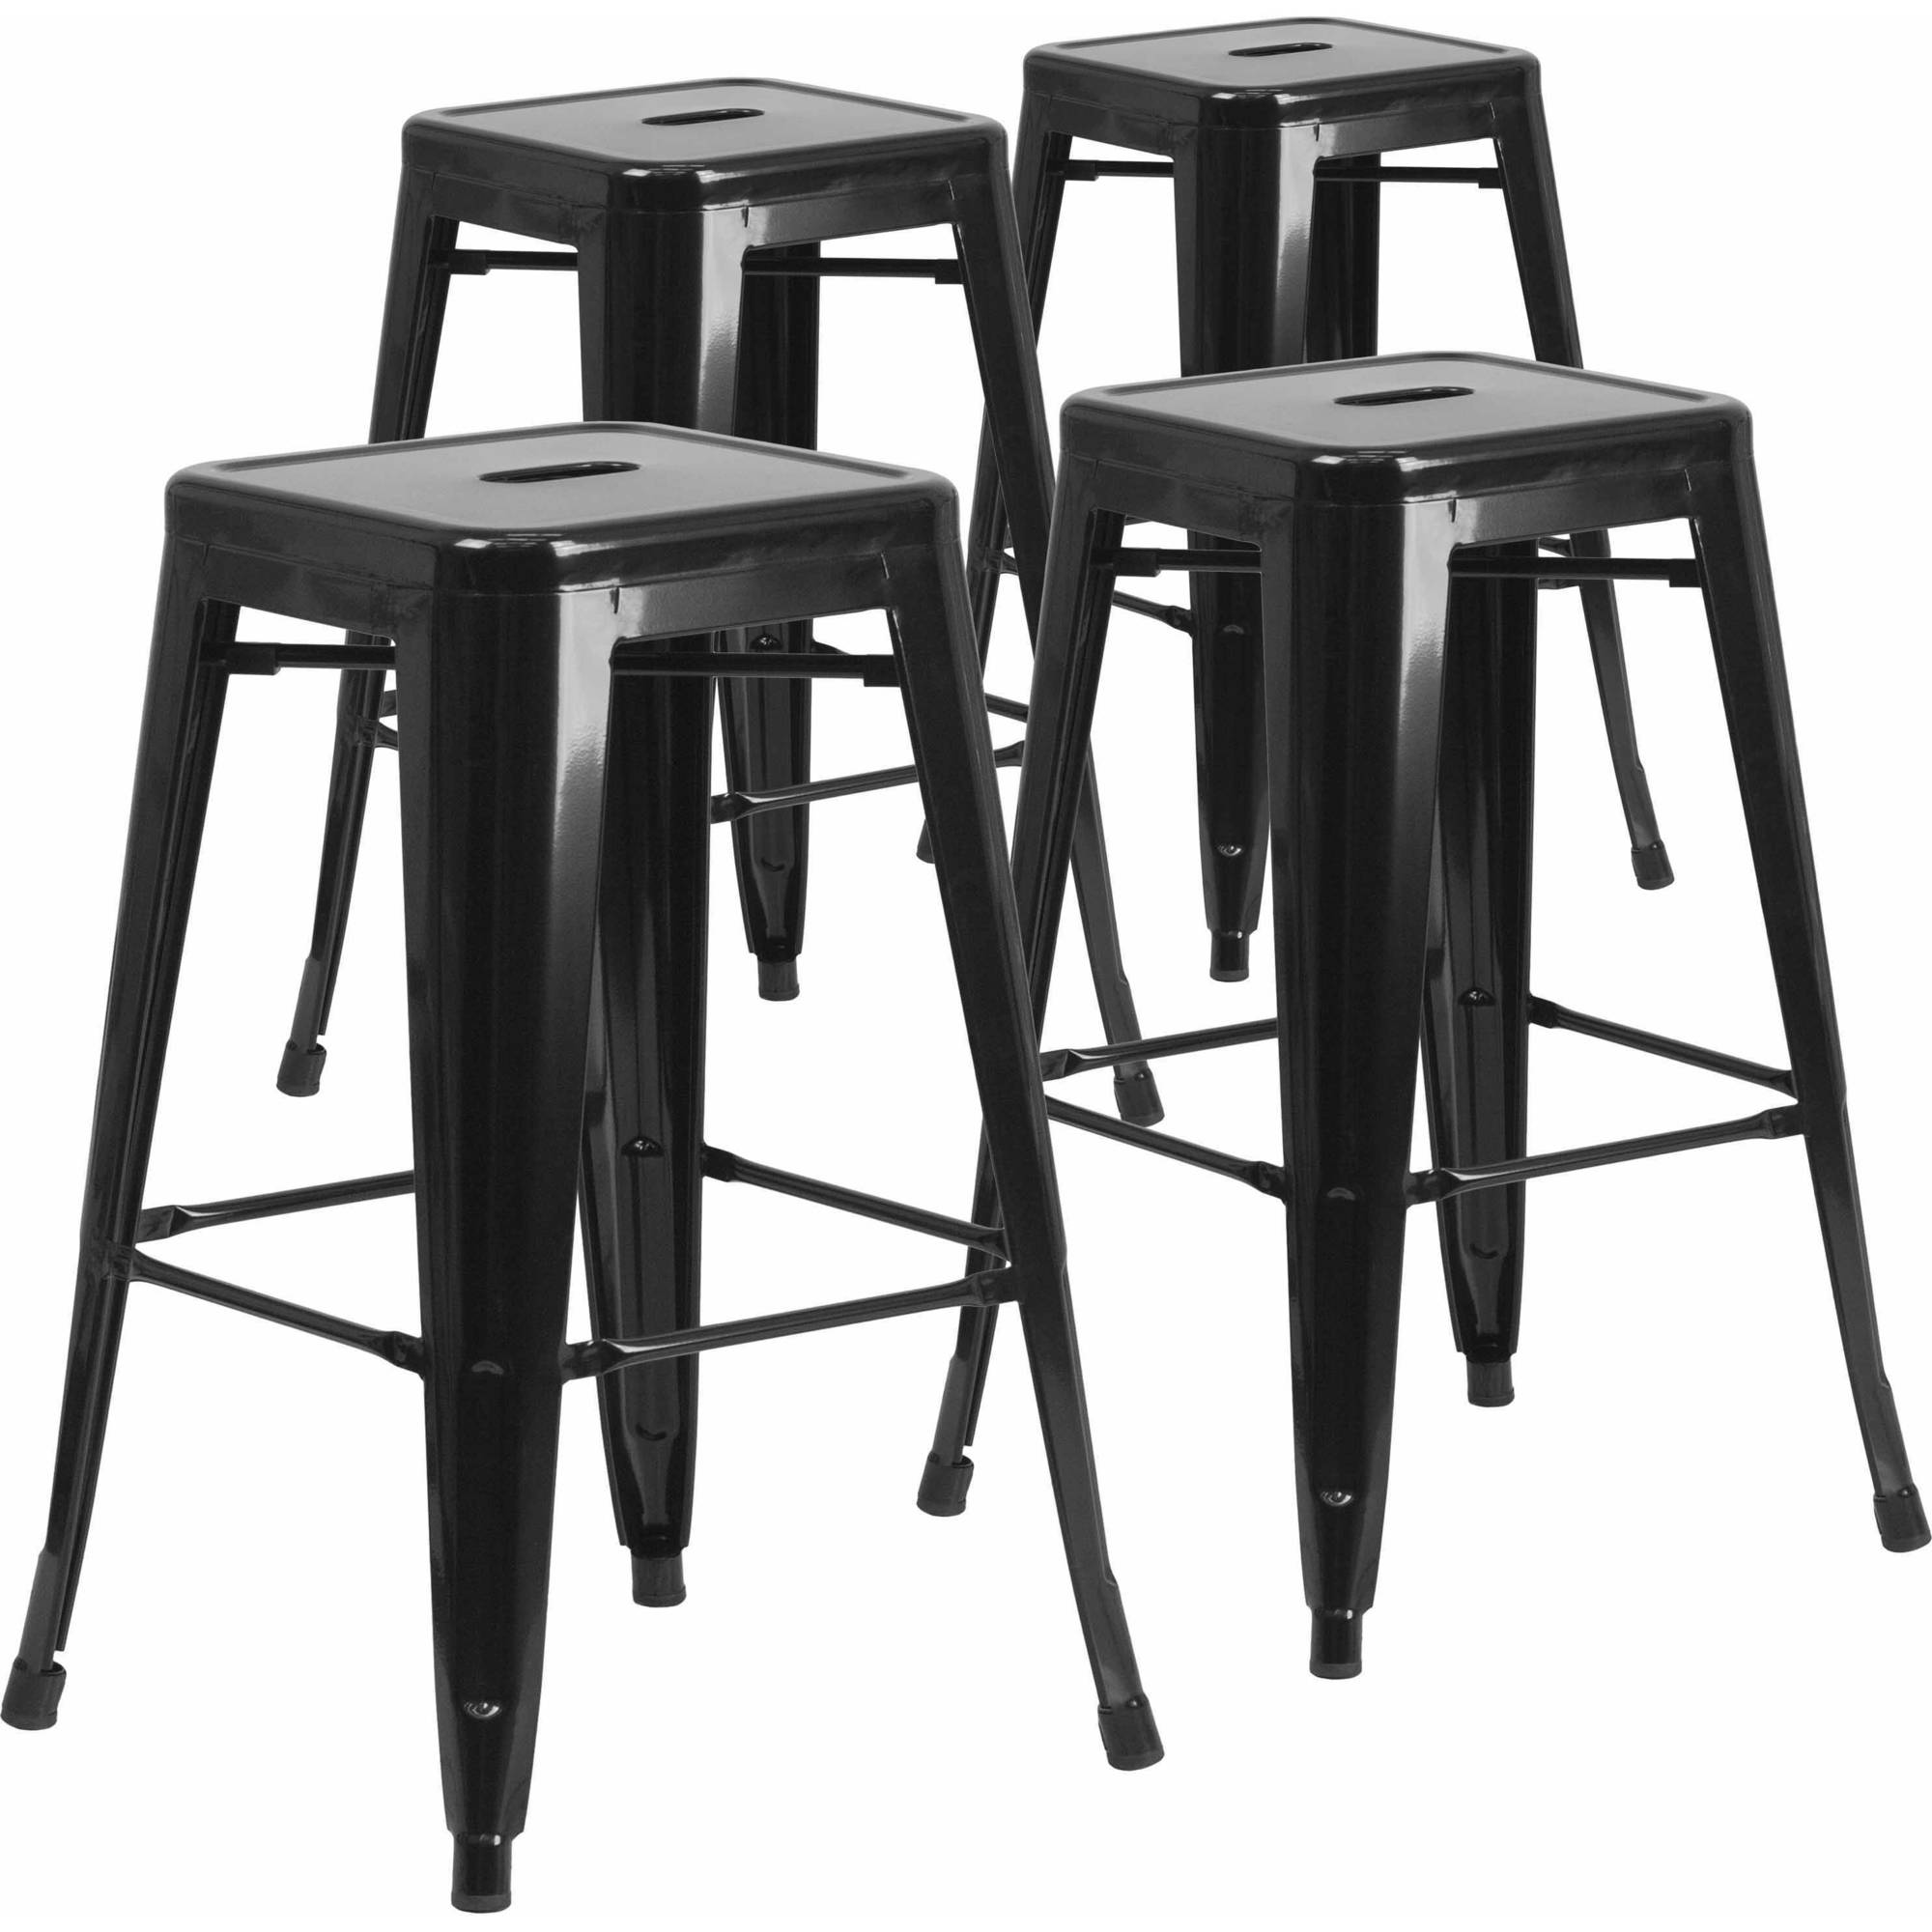 35 Inch High Bar Stools Zef Jam